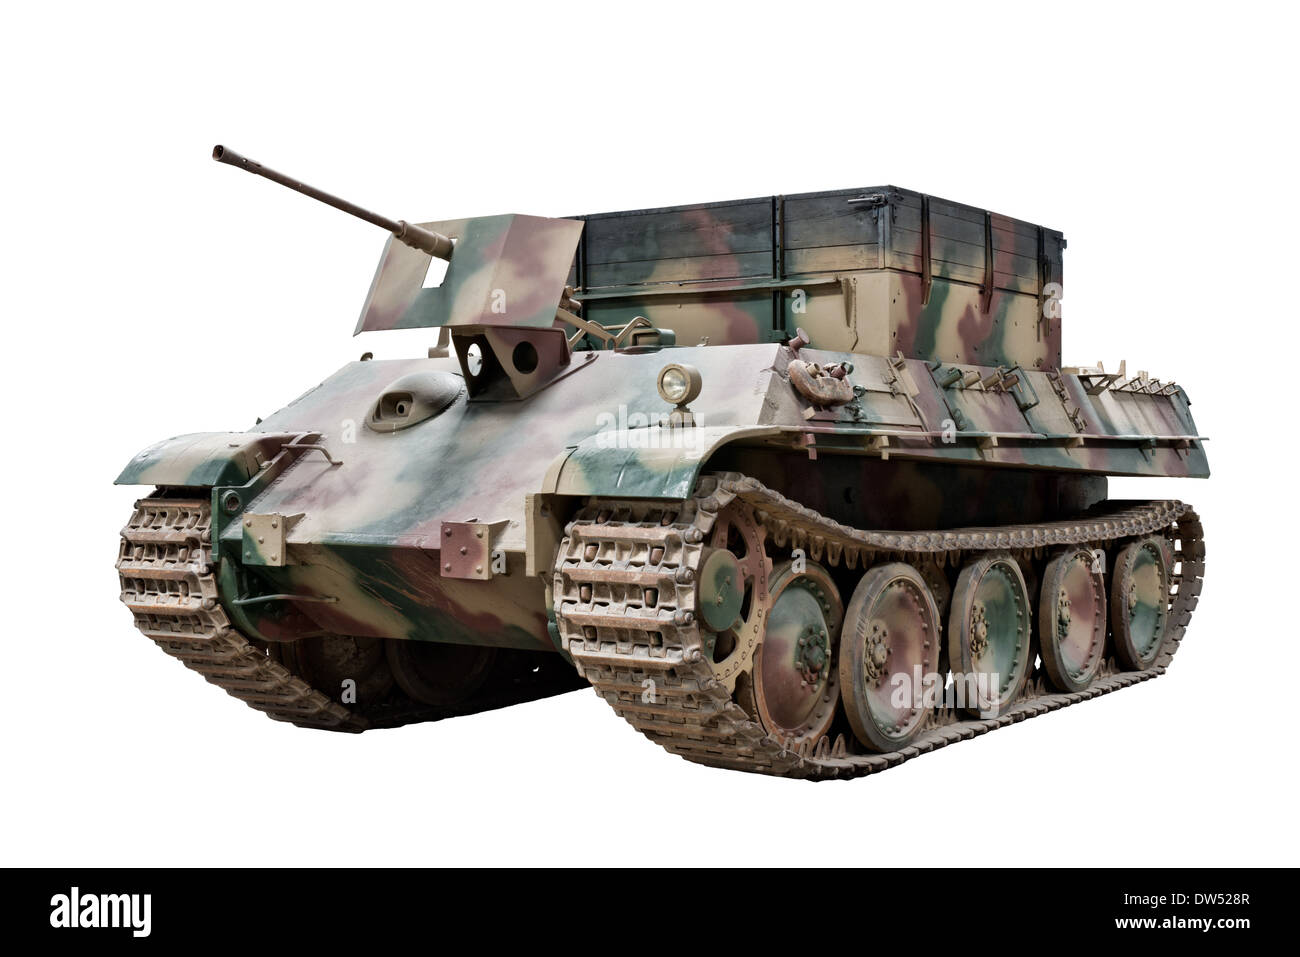 A cut out of a Bergepanther armored recovery vehicle (Sd.Kfz.179) used by Nazi German forces during WW2 - Stock Image